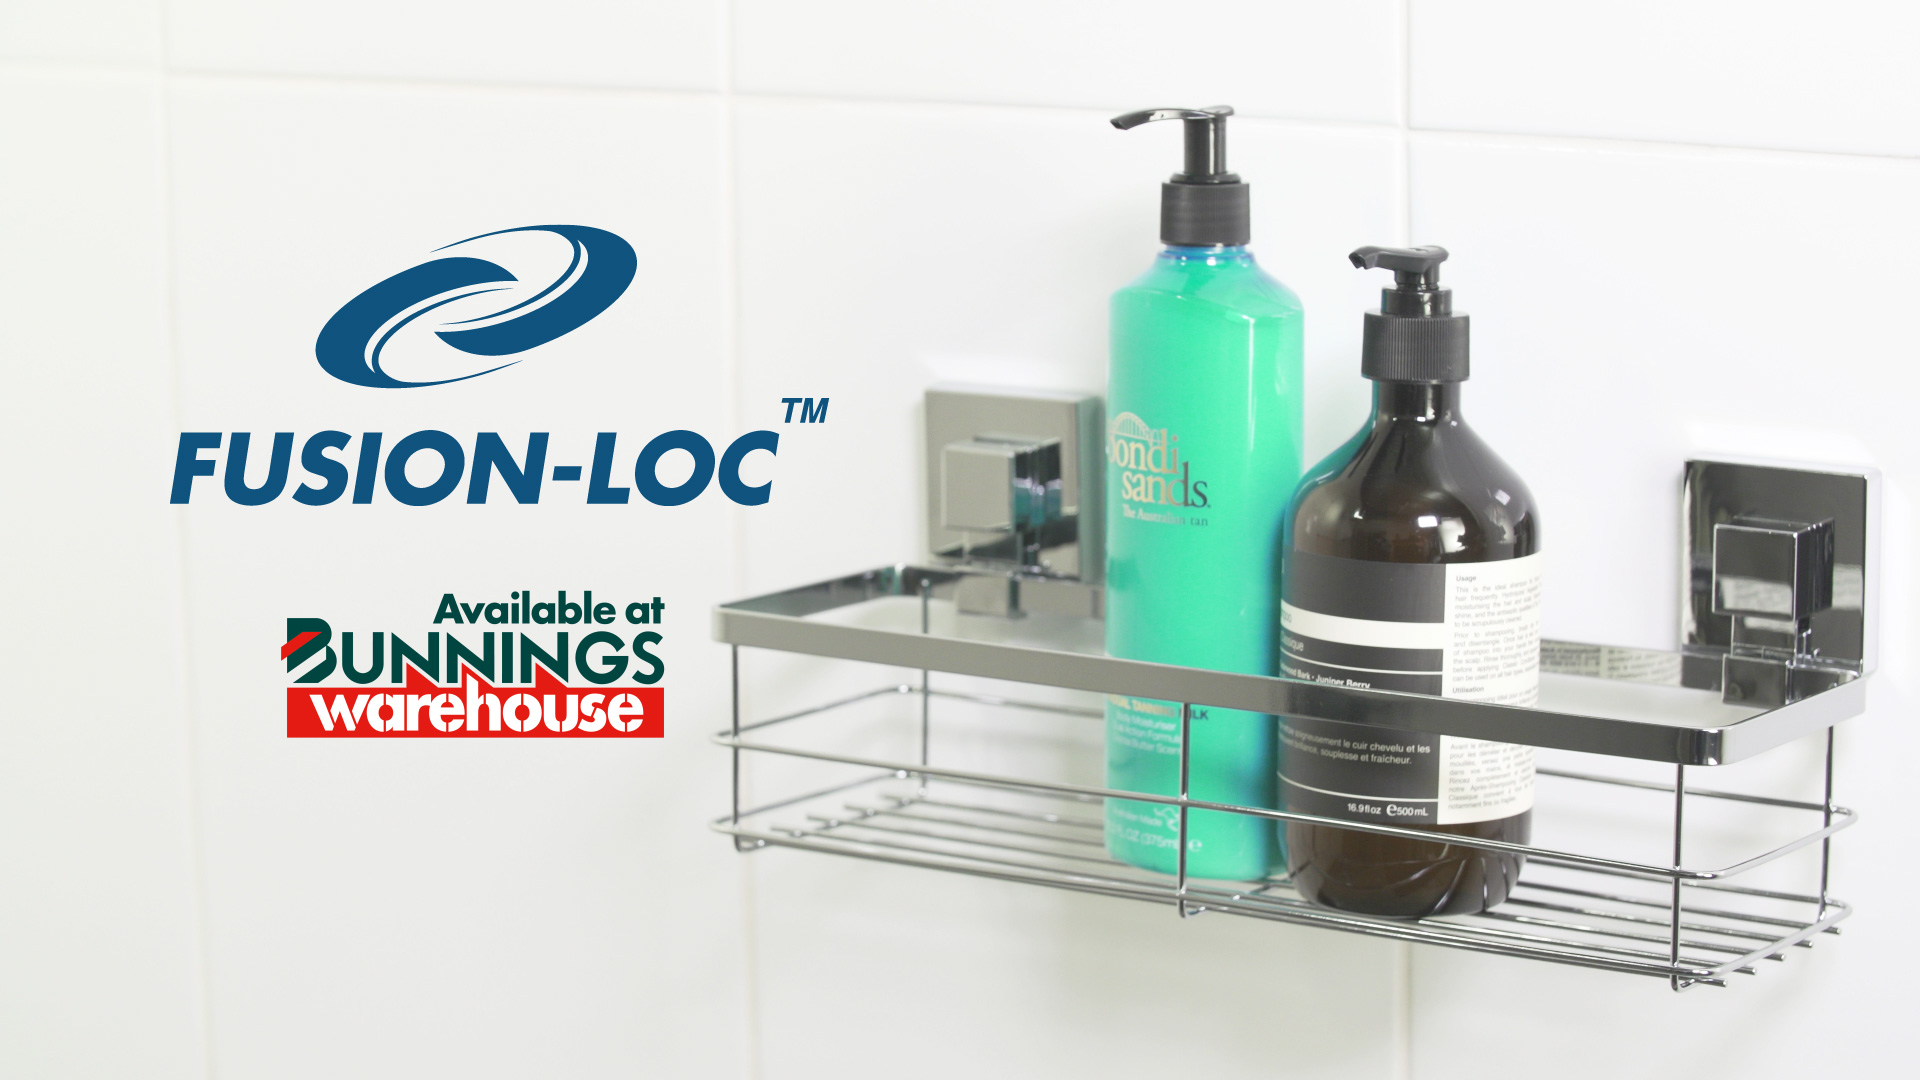 Fusion-Loc Installation Videos, Bathroom Accessories